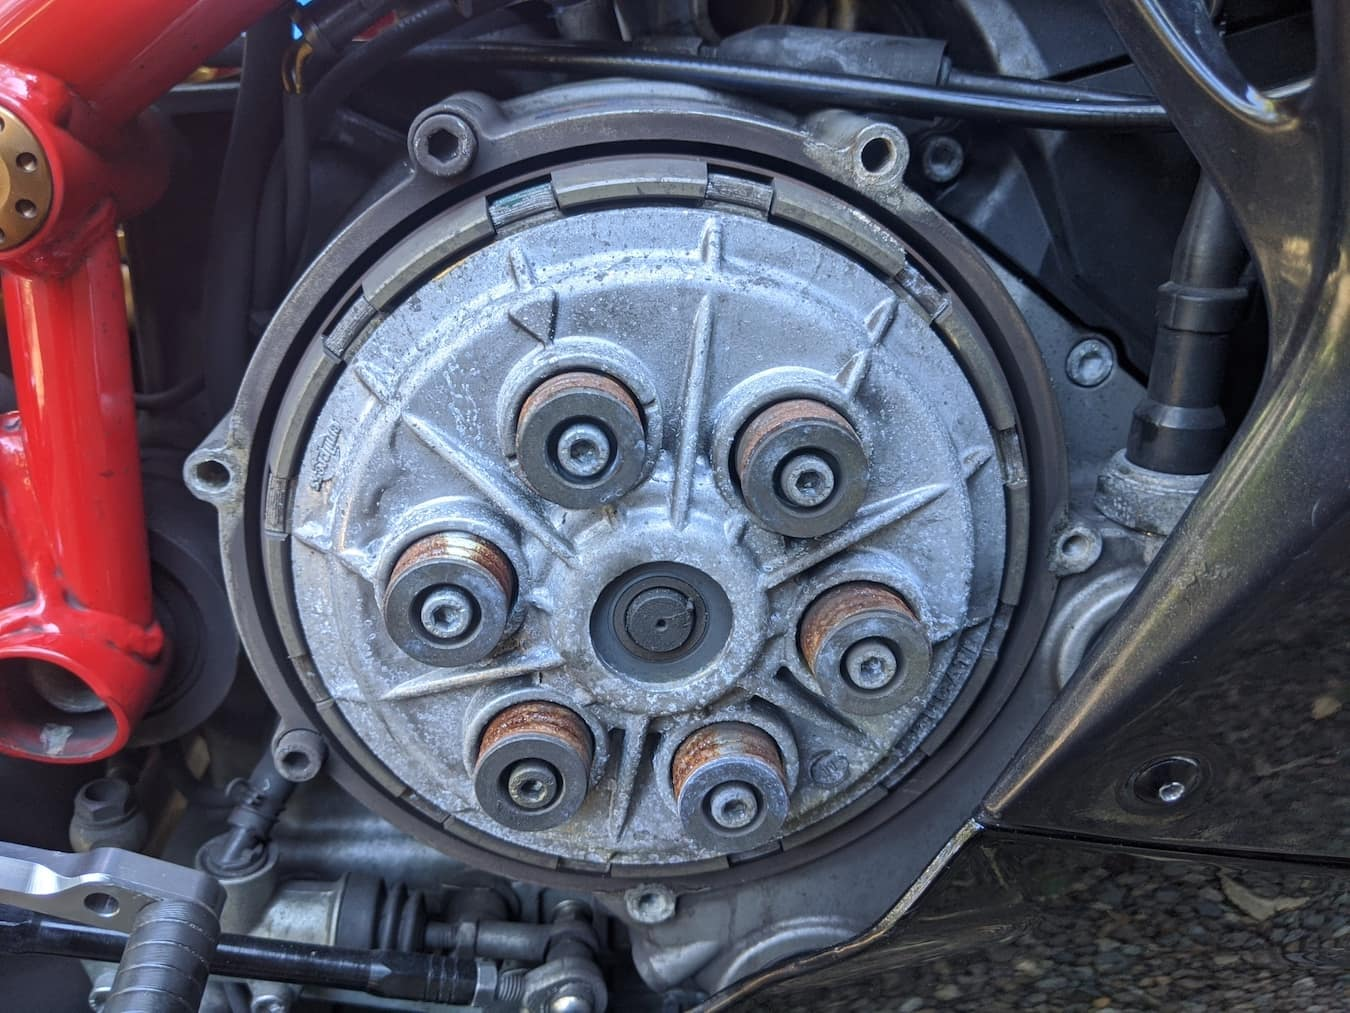 Rusty springs on a Ducati dry clutch from a motorcycle